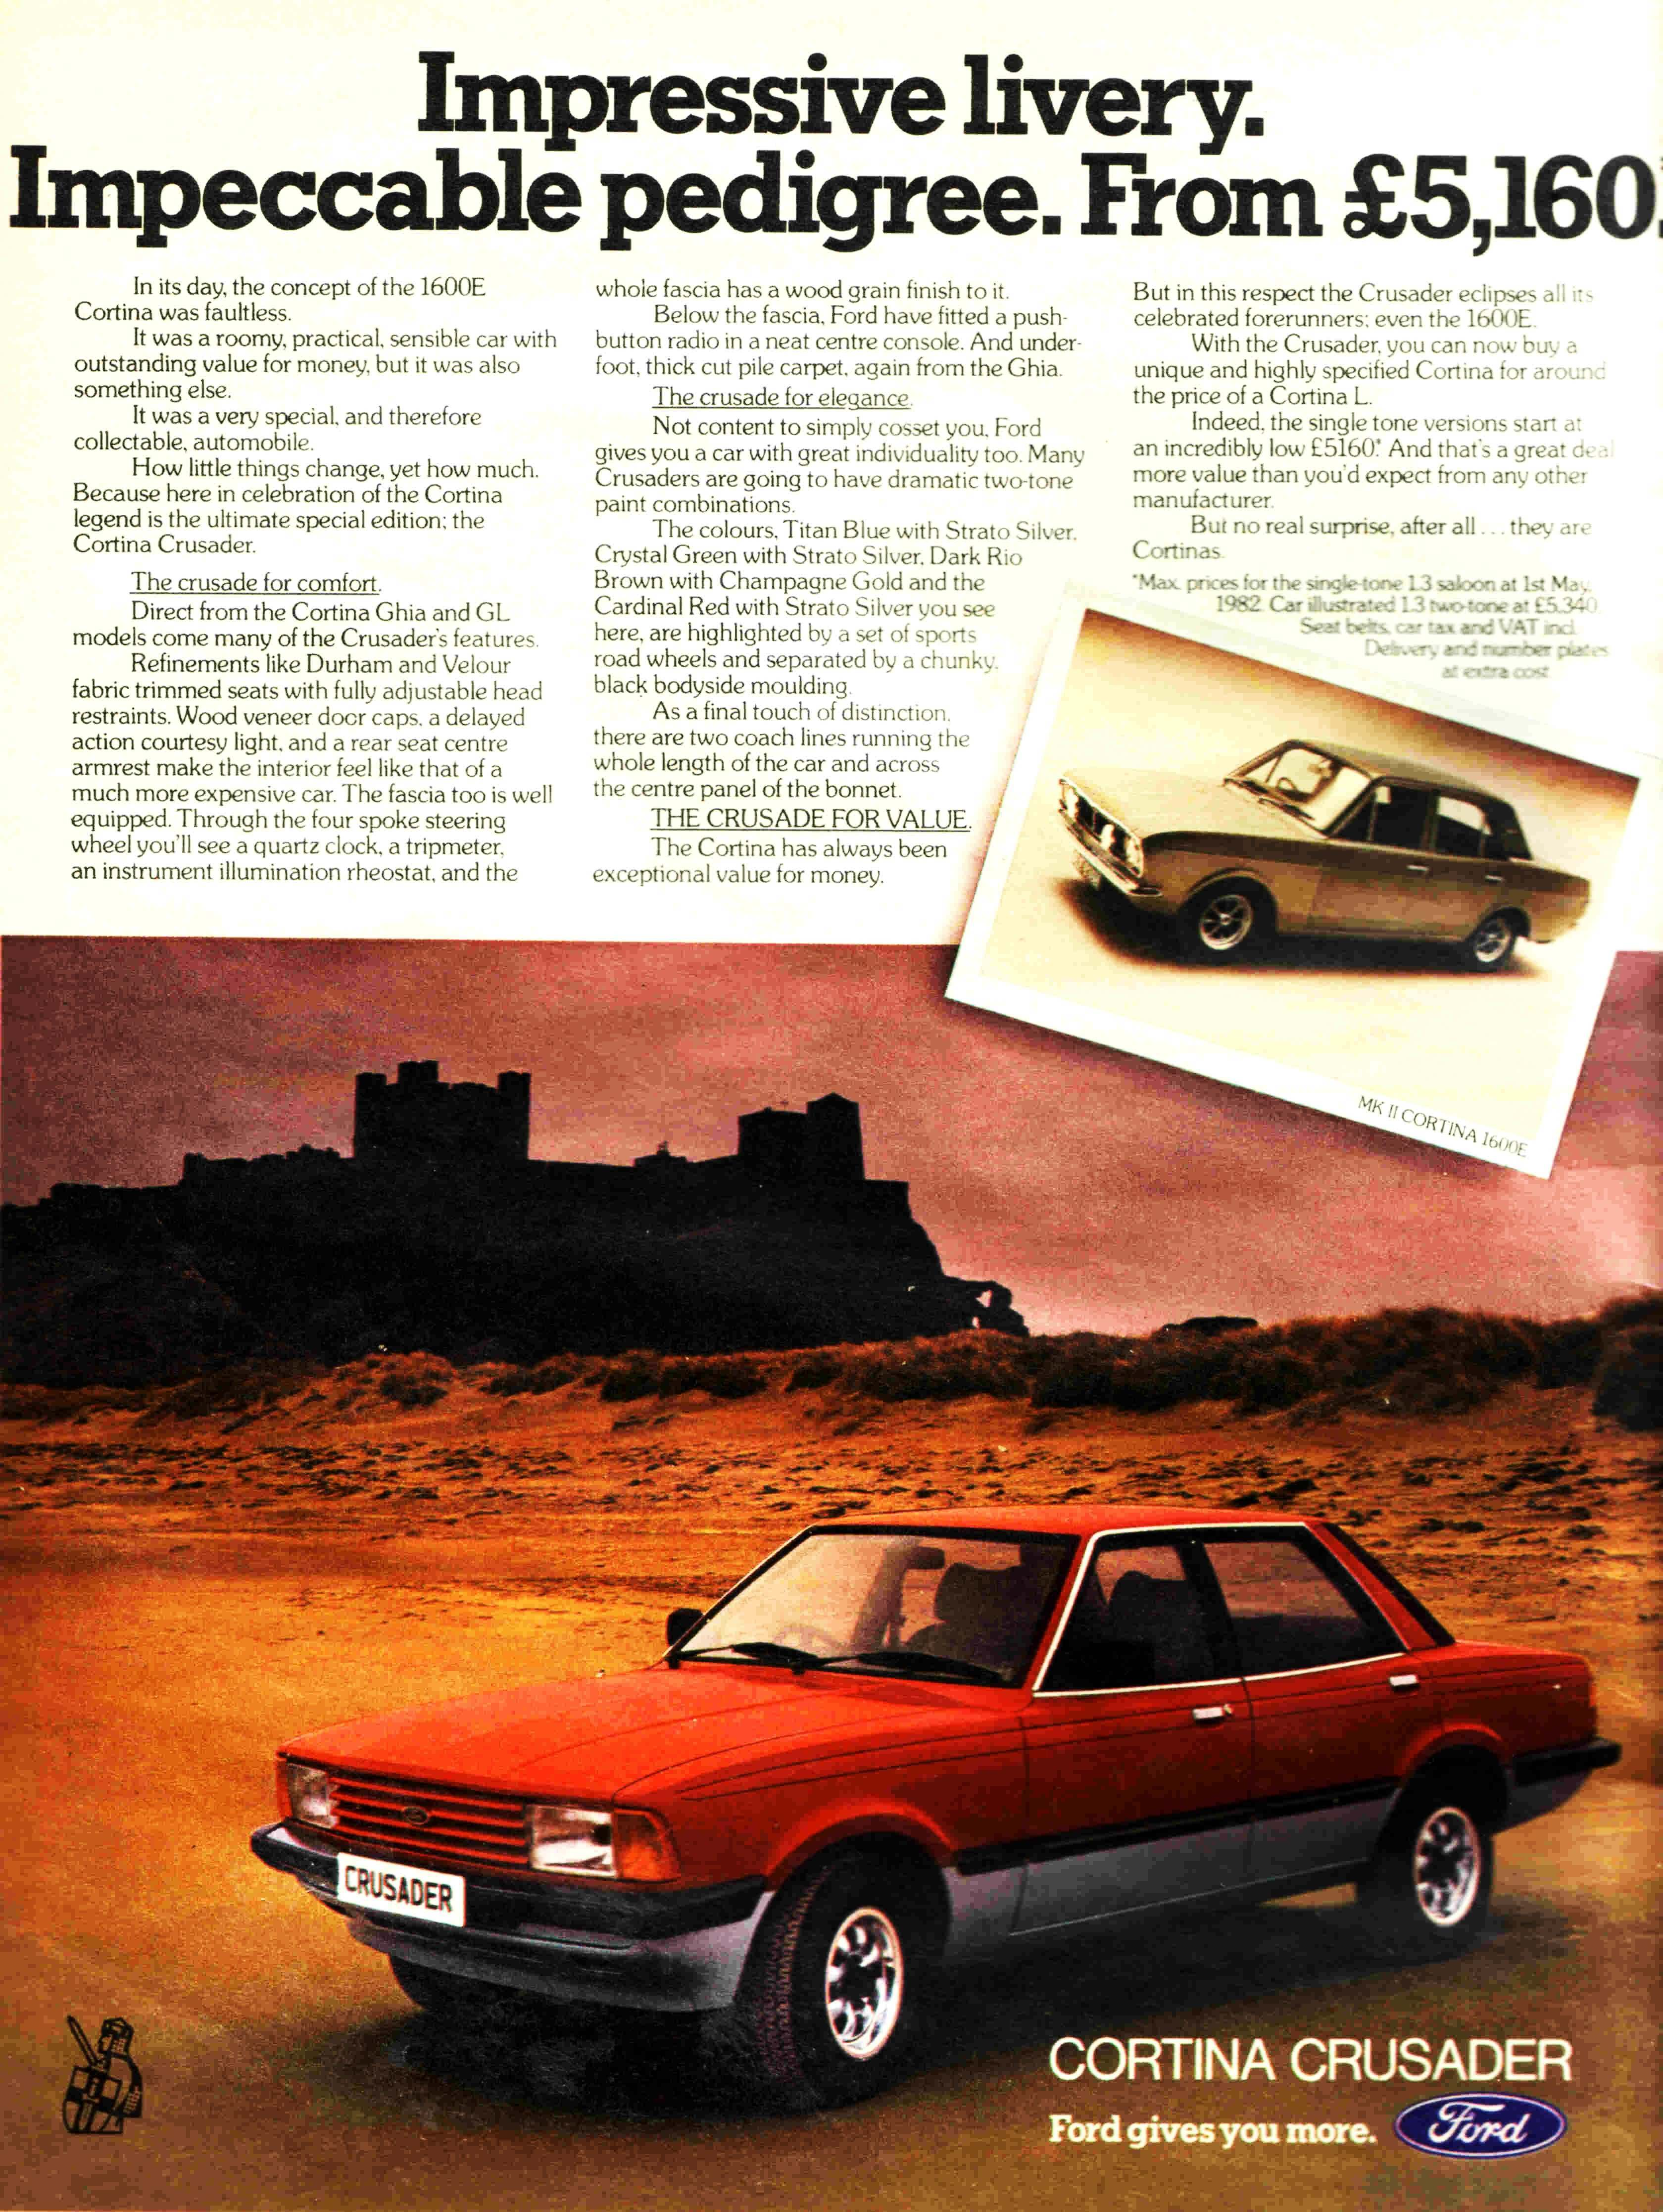 The Cortina Crusader advertised in the Radio Times in 1982. The last year of the Cortina.